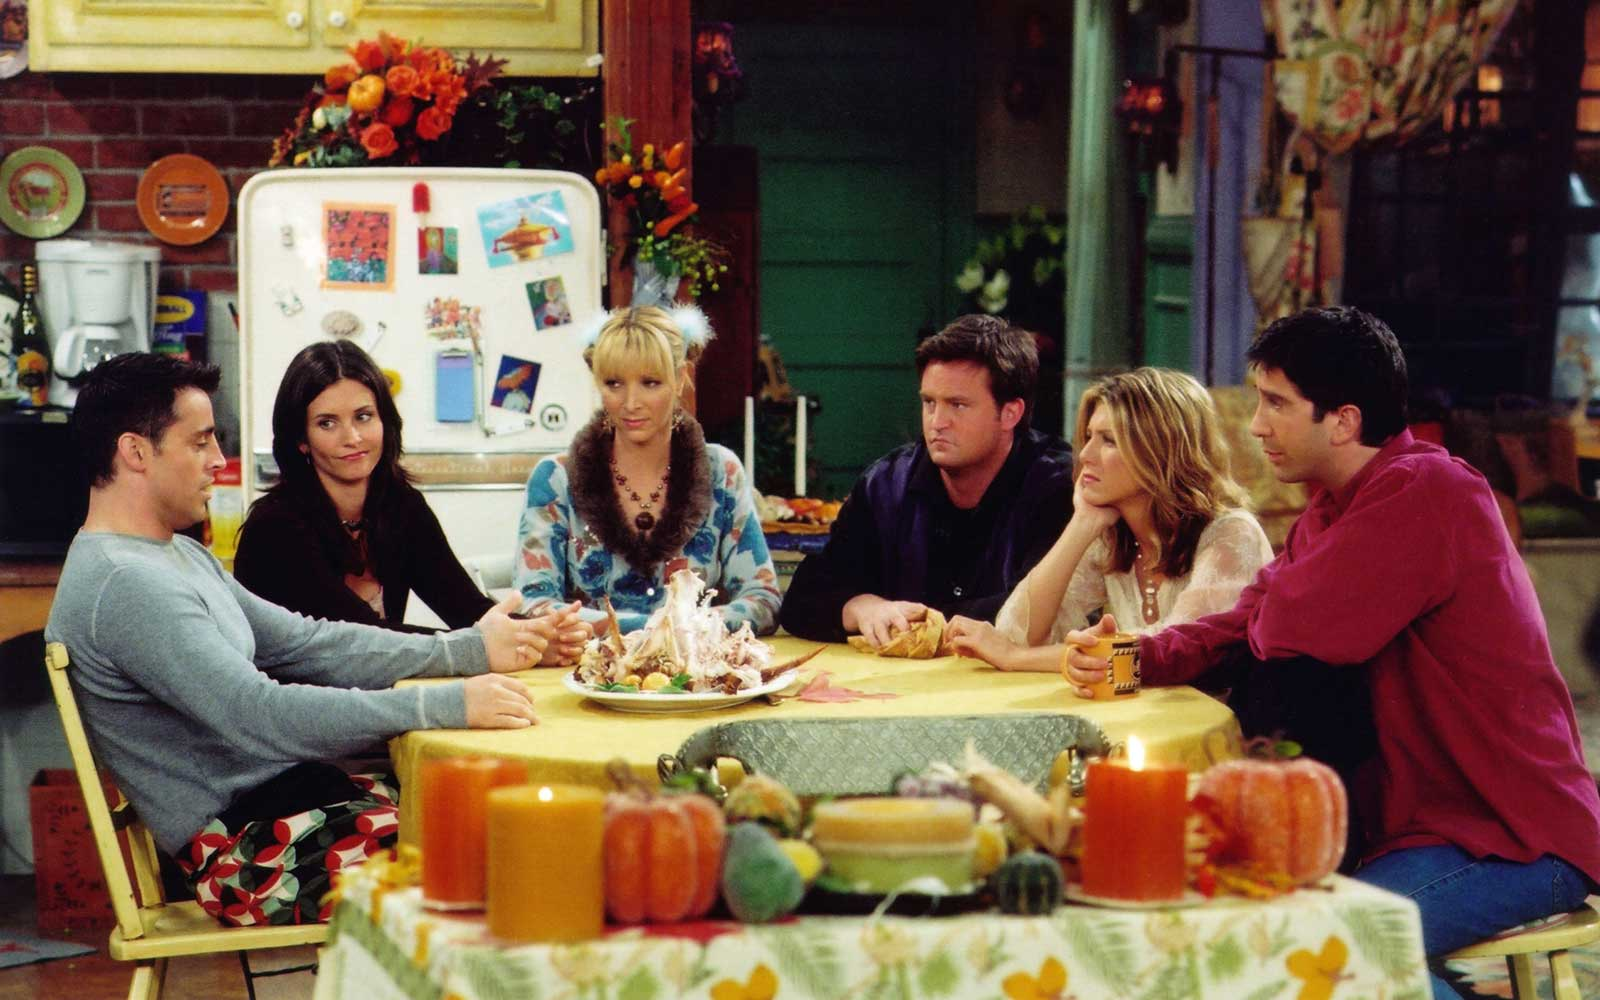 'Friends' Fans Can Visit Rachel and Monica's Apartment in NYC This Fall